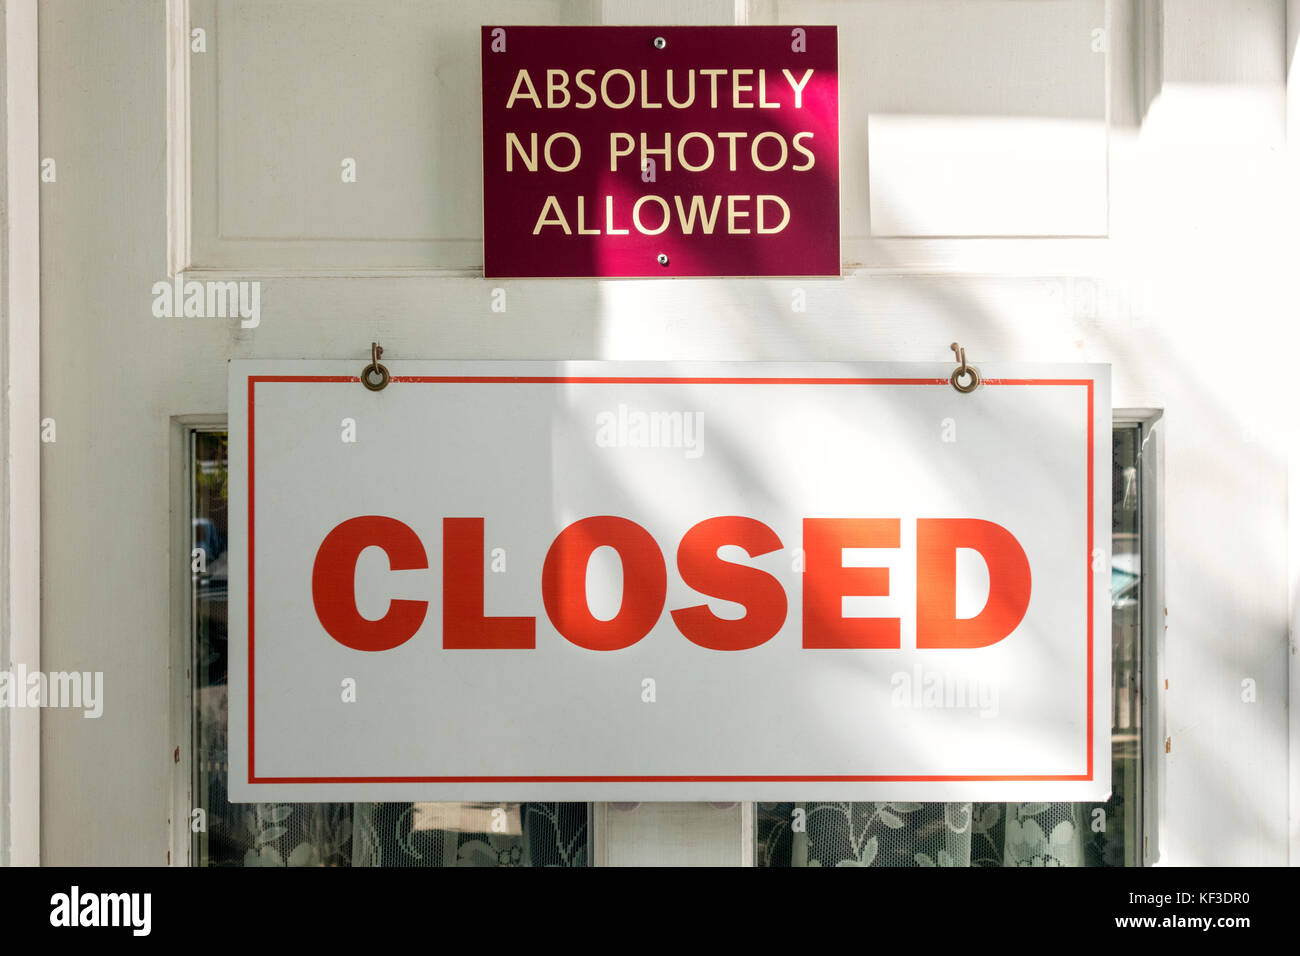 http://c7.alamy.com/comp/KF3DR0/sign-absolutely-no-photos-allowed-on-closed-museum-door-with-sign-KF3DR0.jpg